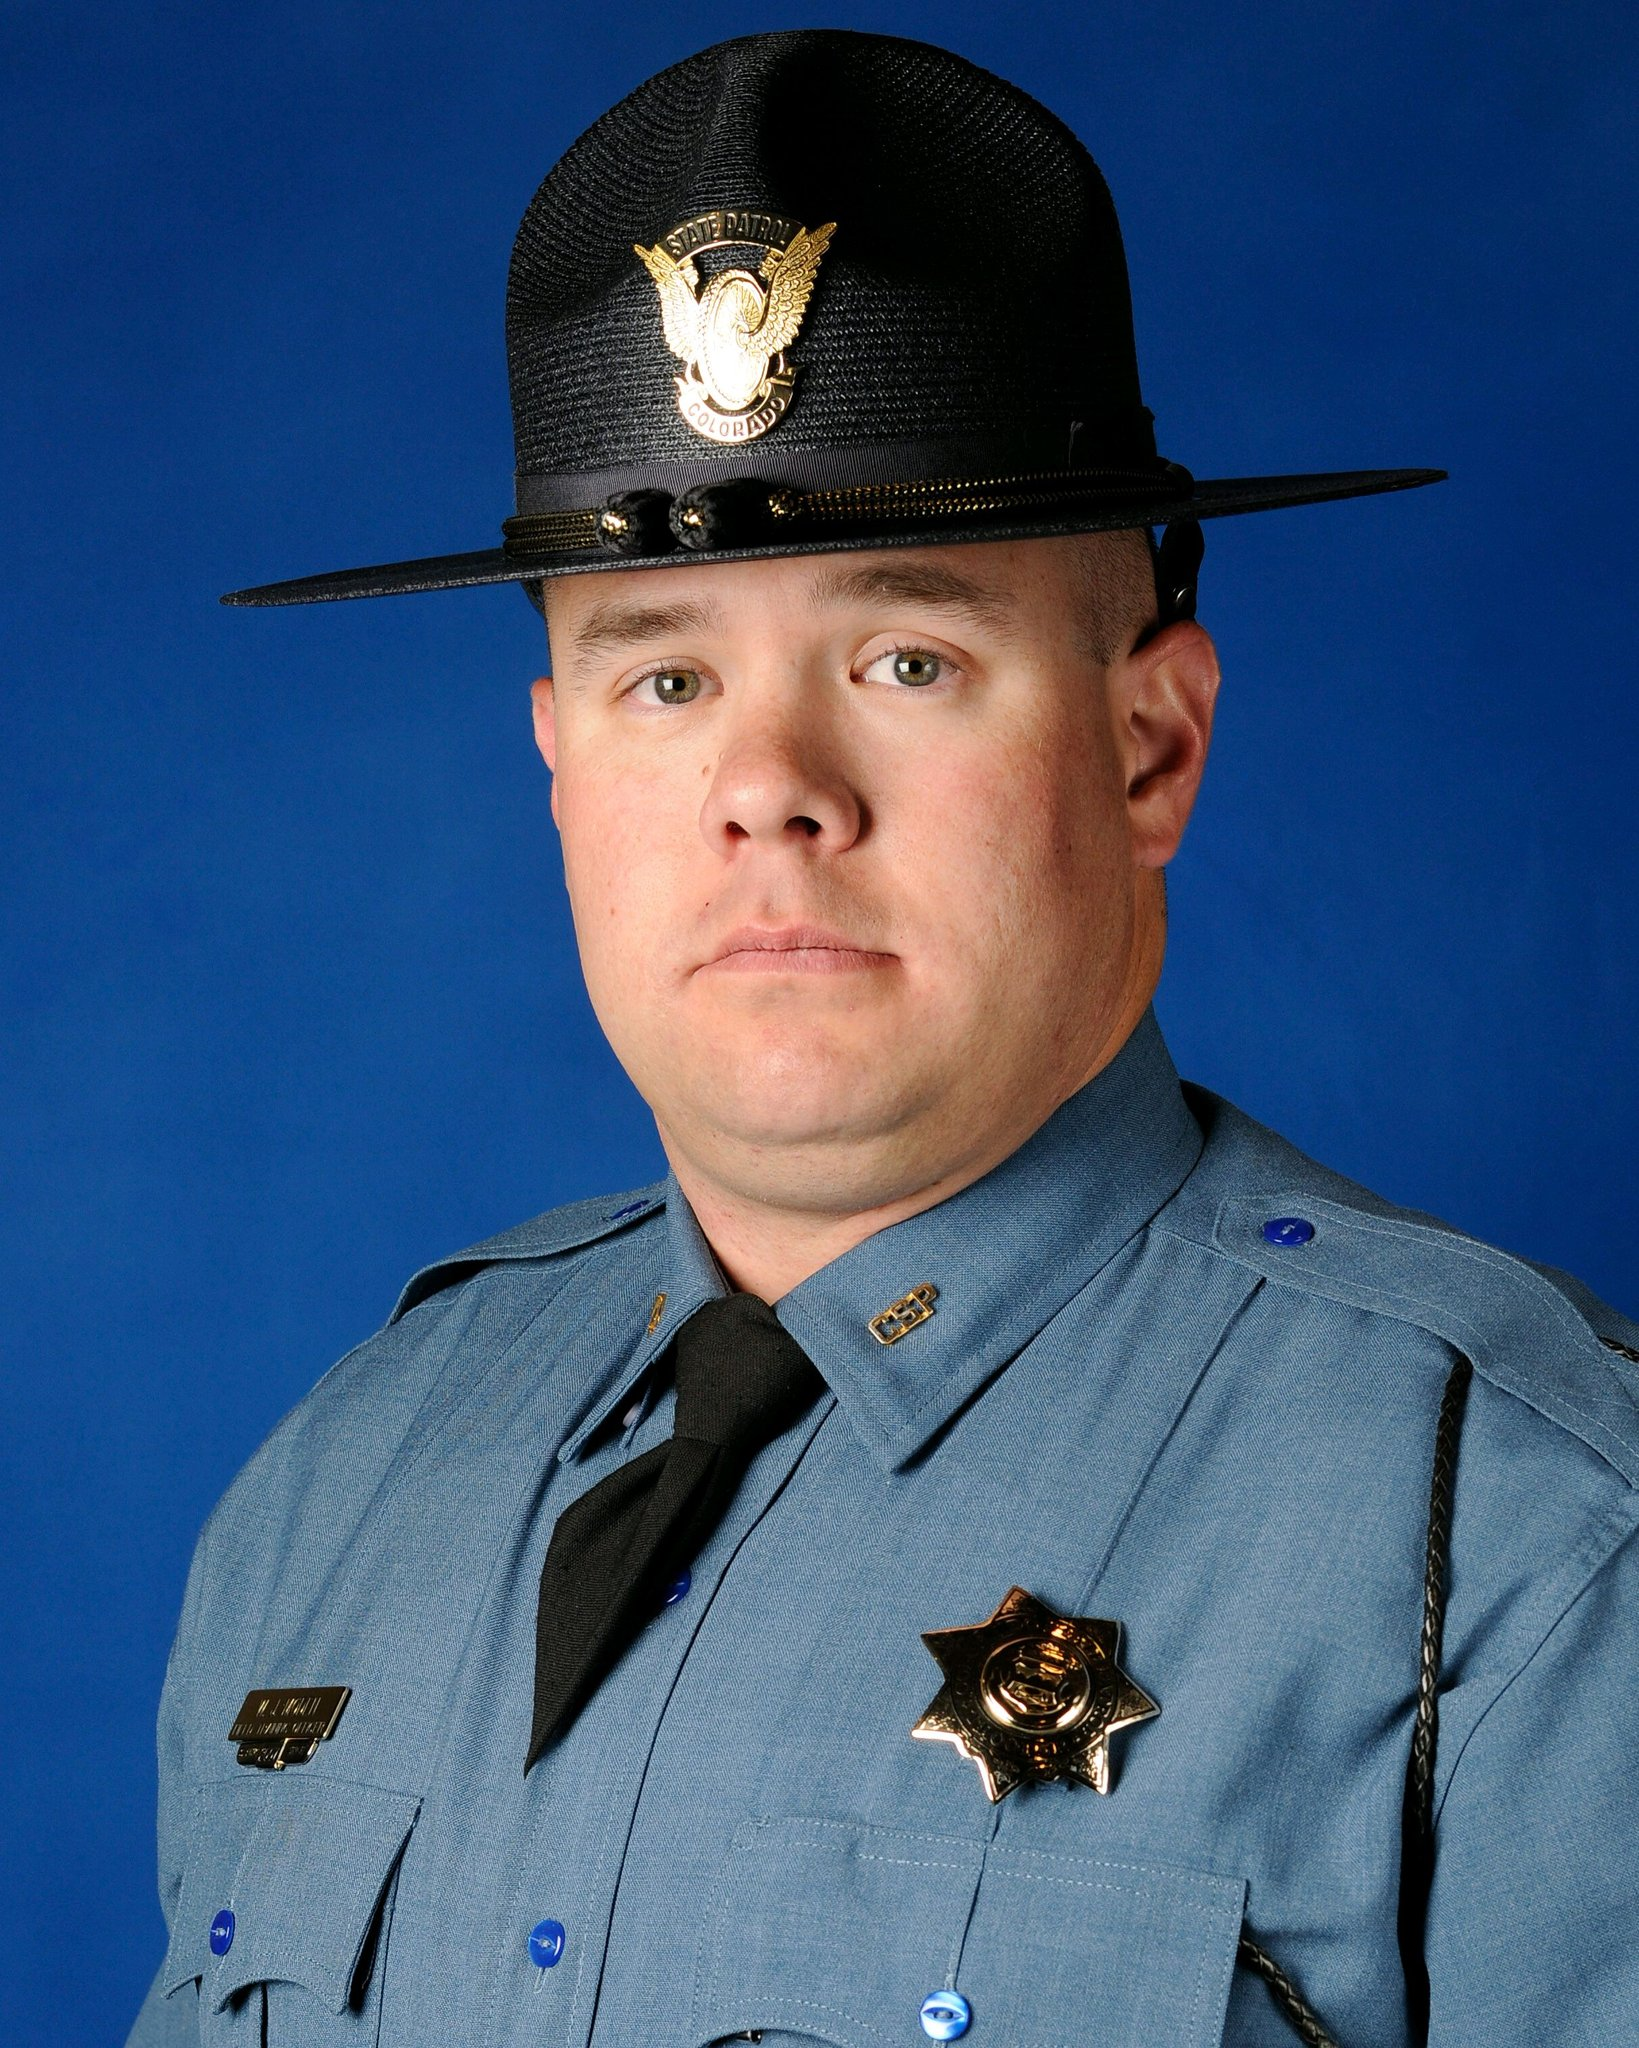 Master Trooper William Moden | Colorado State Patrol, Colorado